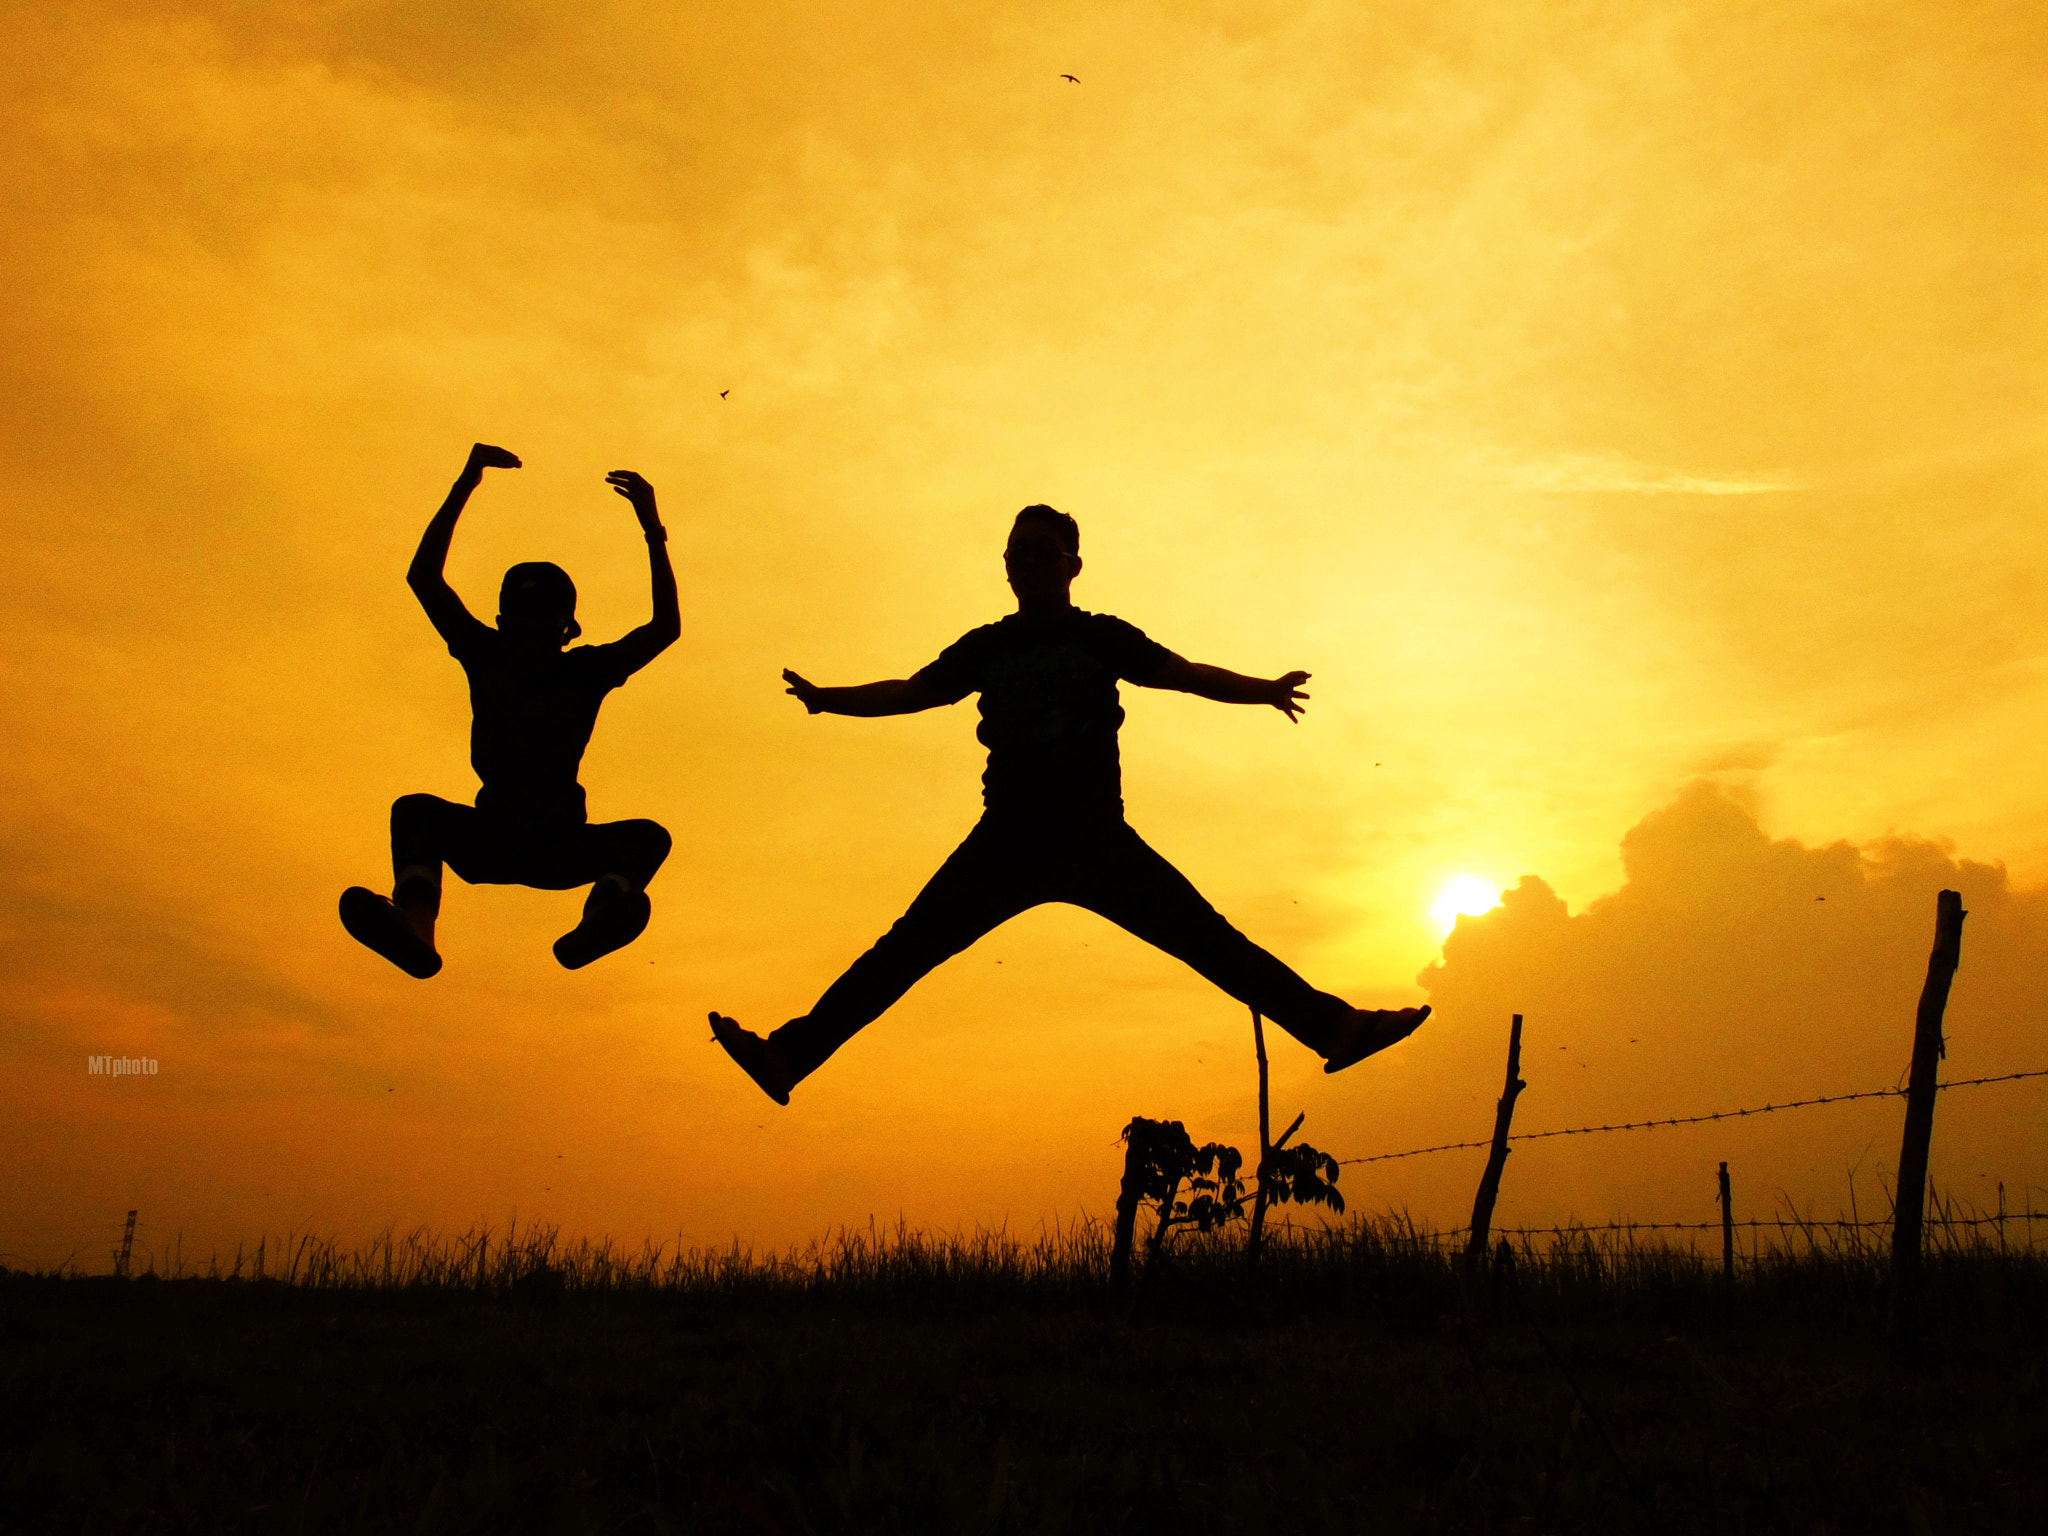 Photograph jump like a pro by MTphoto on 500px